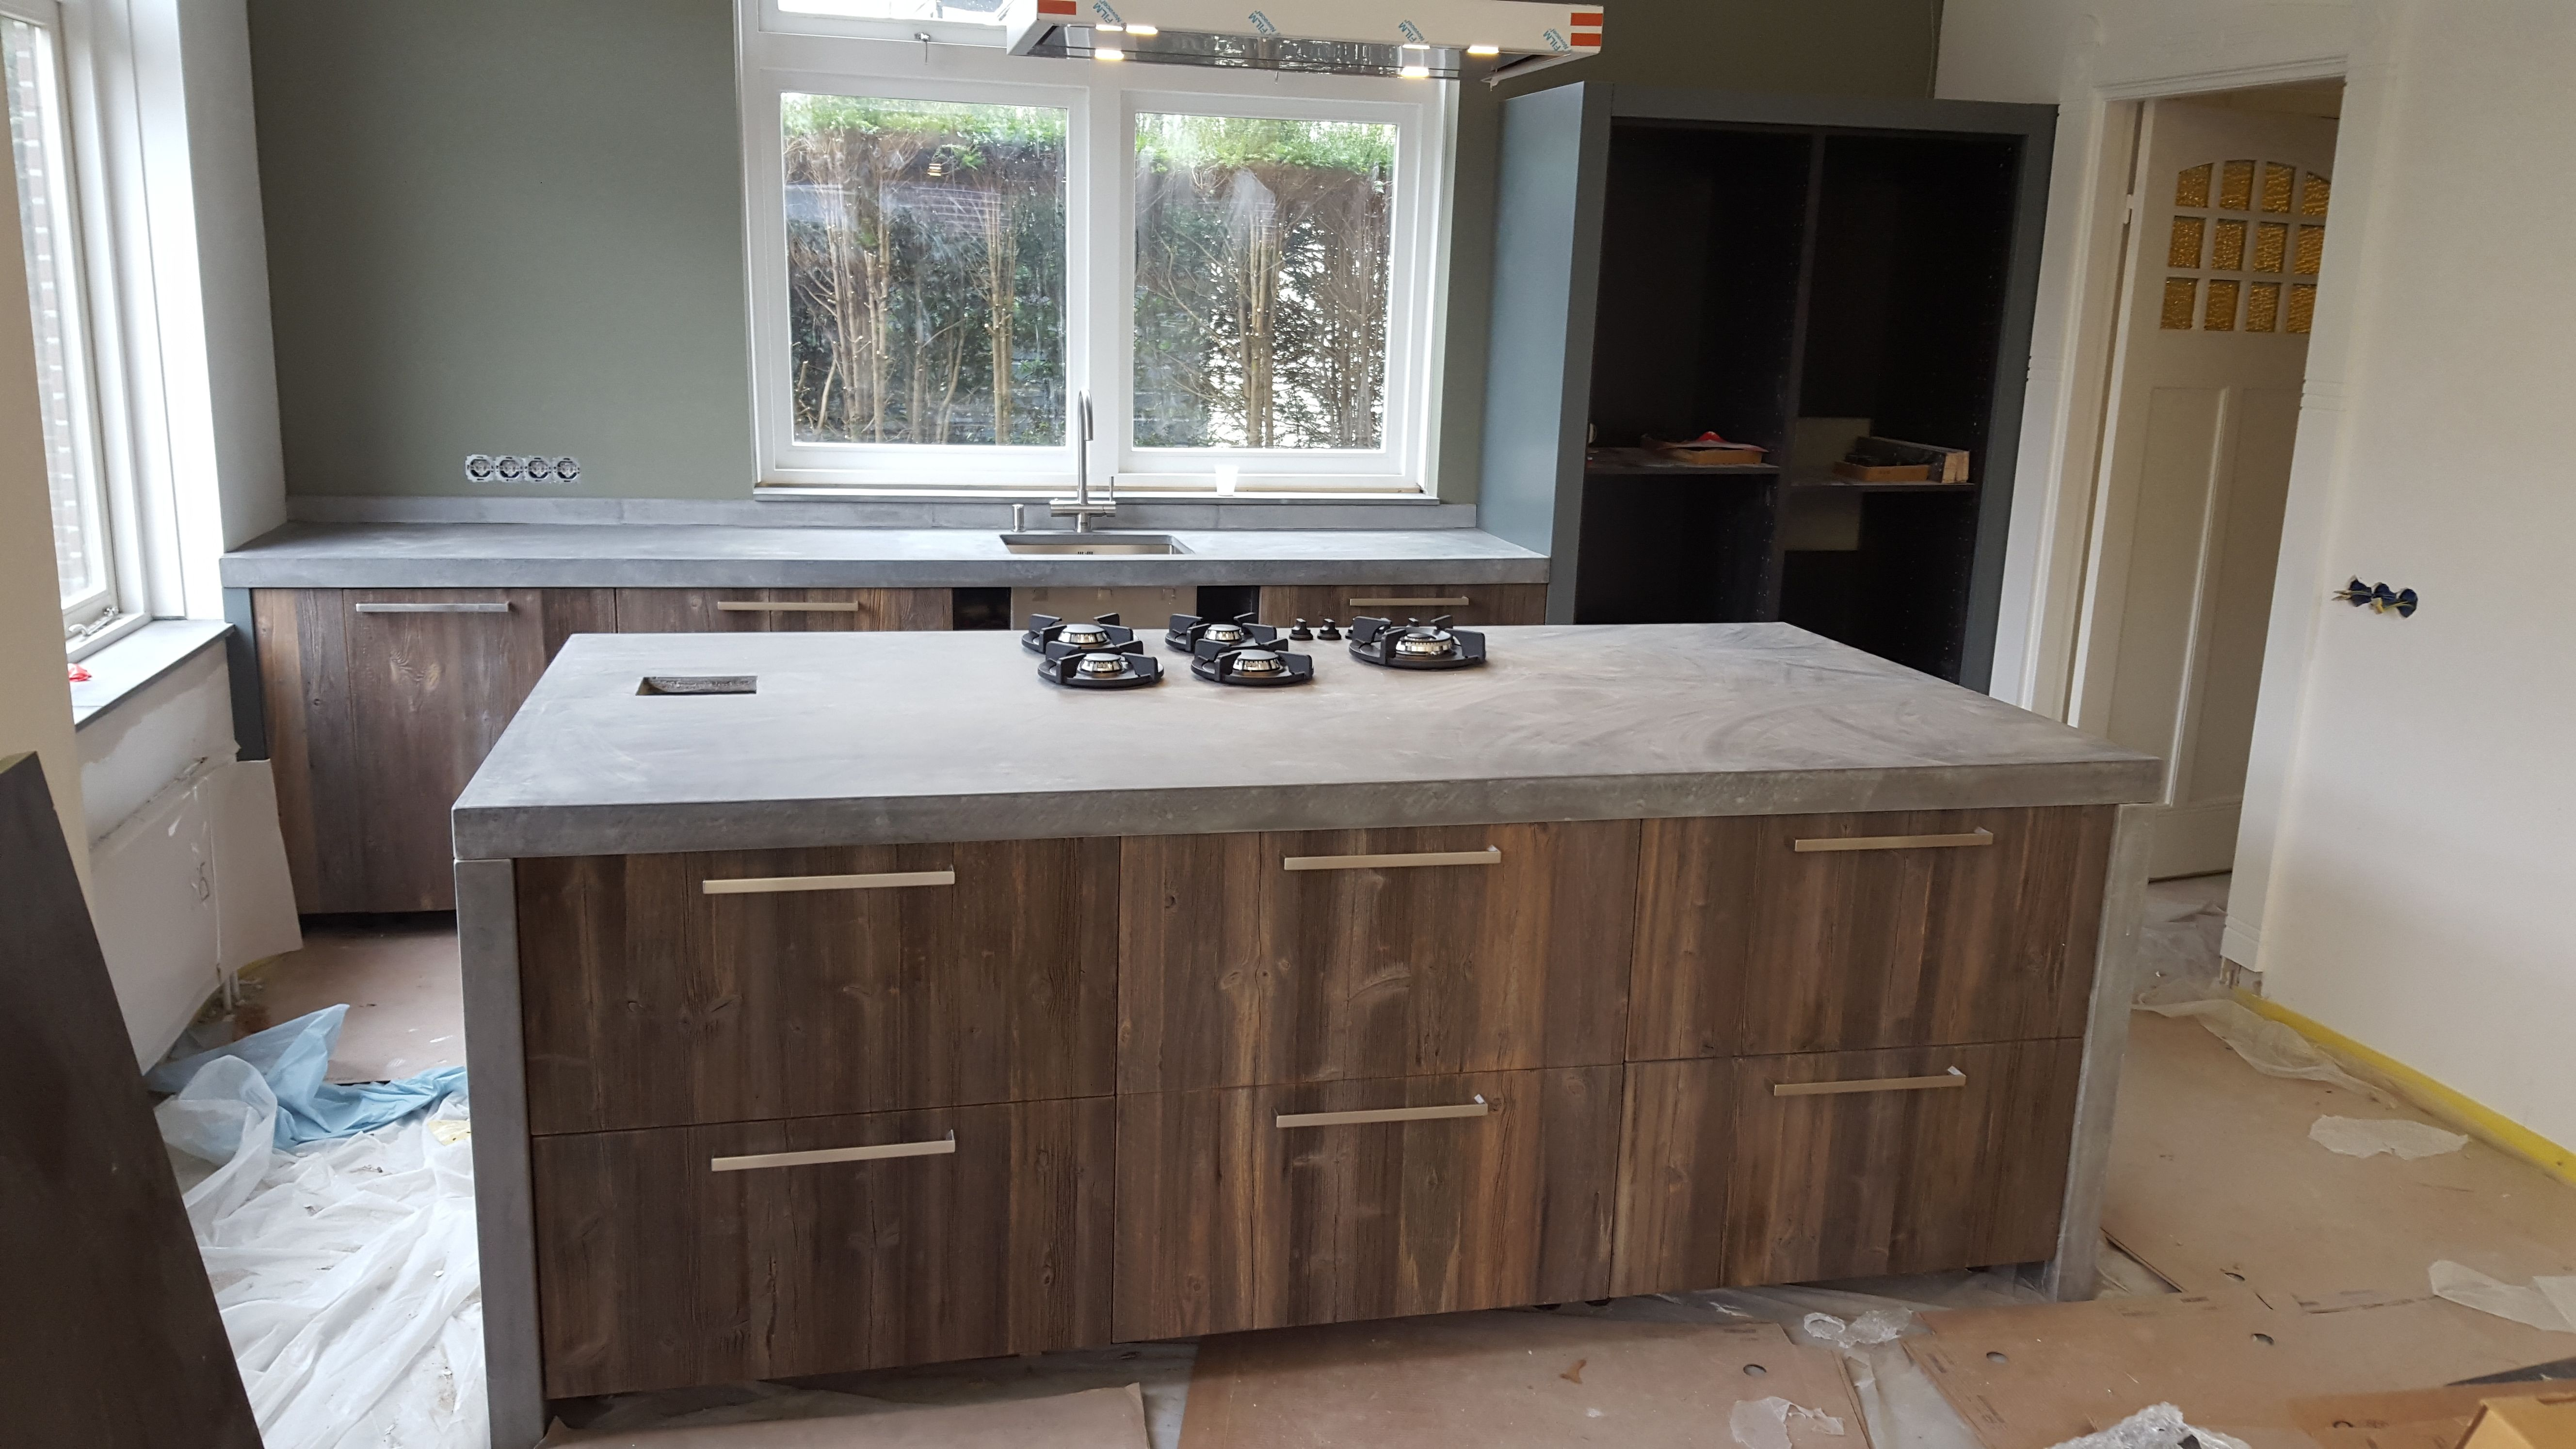 Toonbank Keuken Barnwood Koakdesign Our Koak Design Kitchens